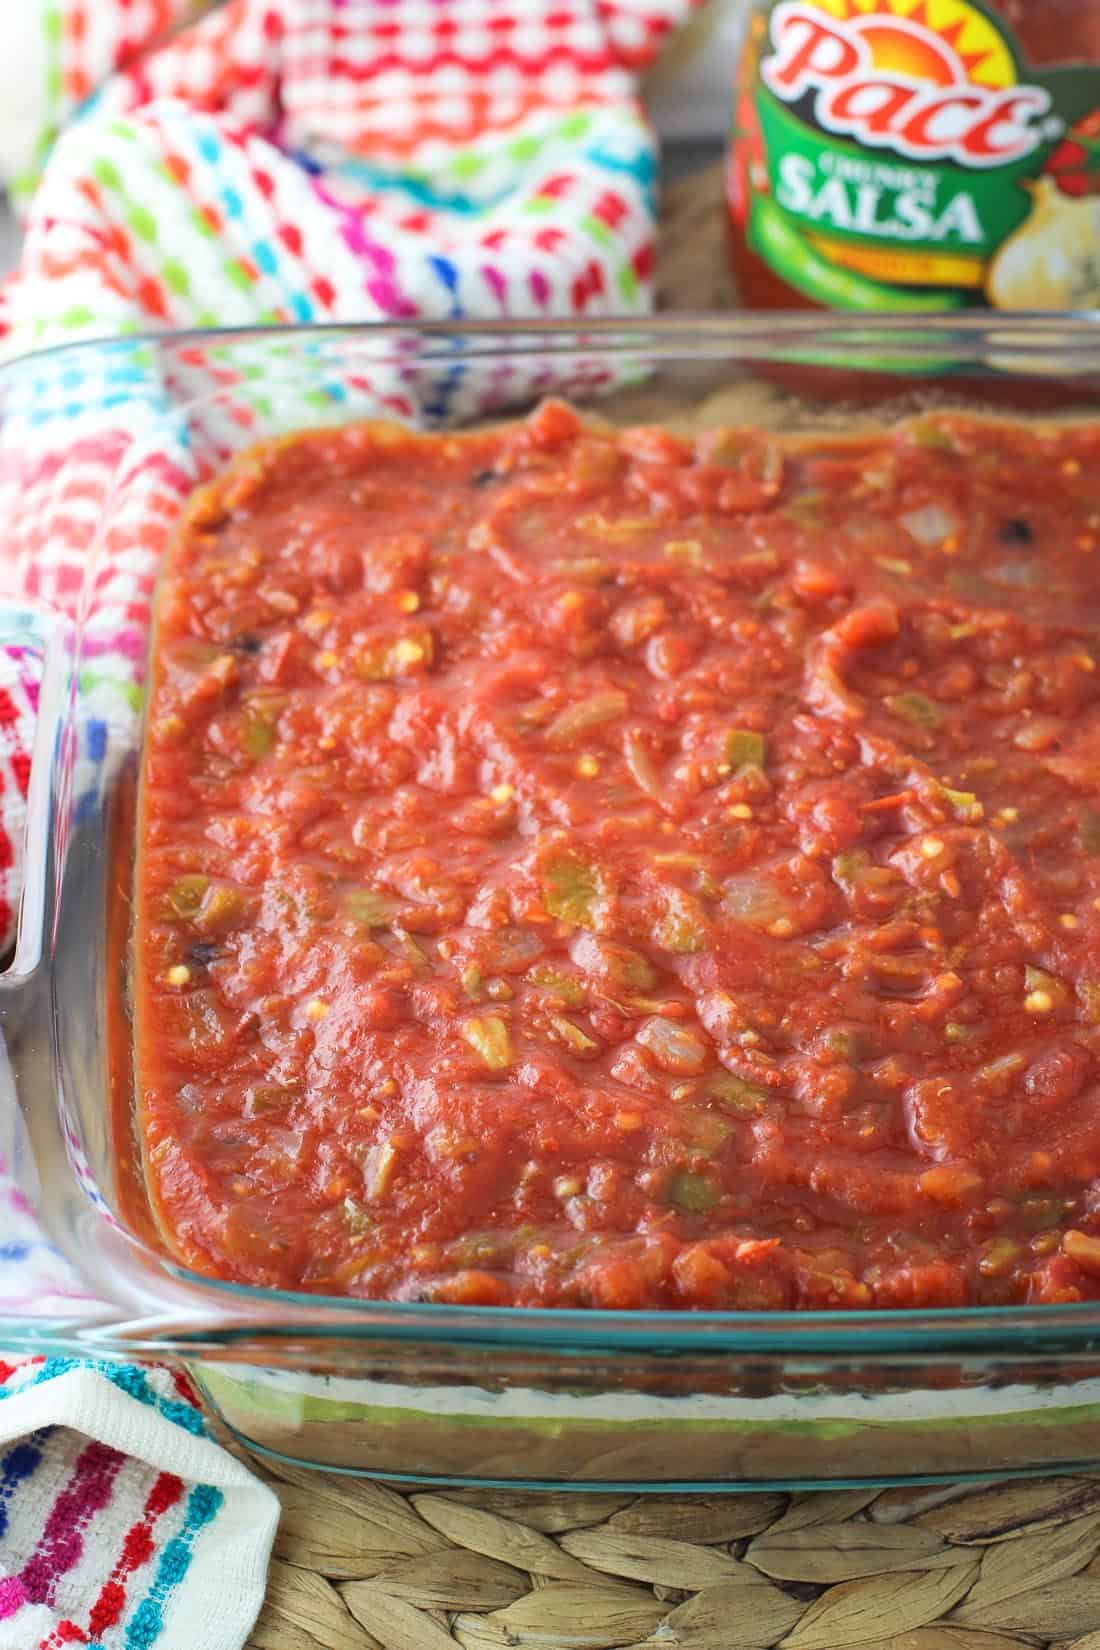 Seven layer dip in a glass baking dish, with the salsa layer on top